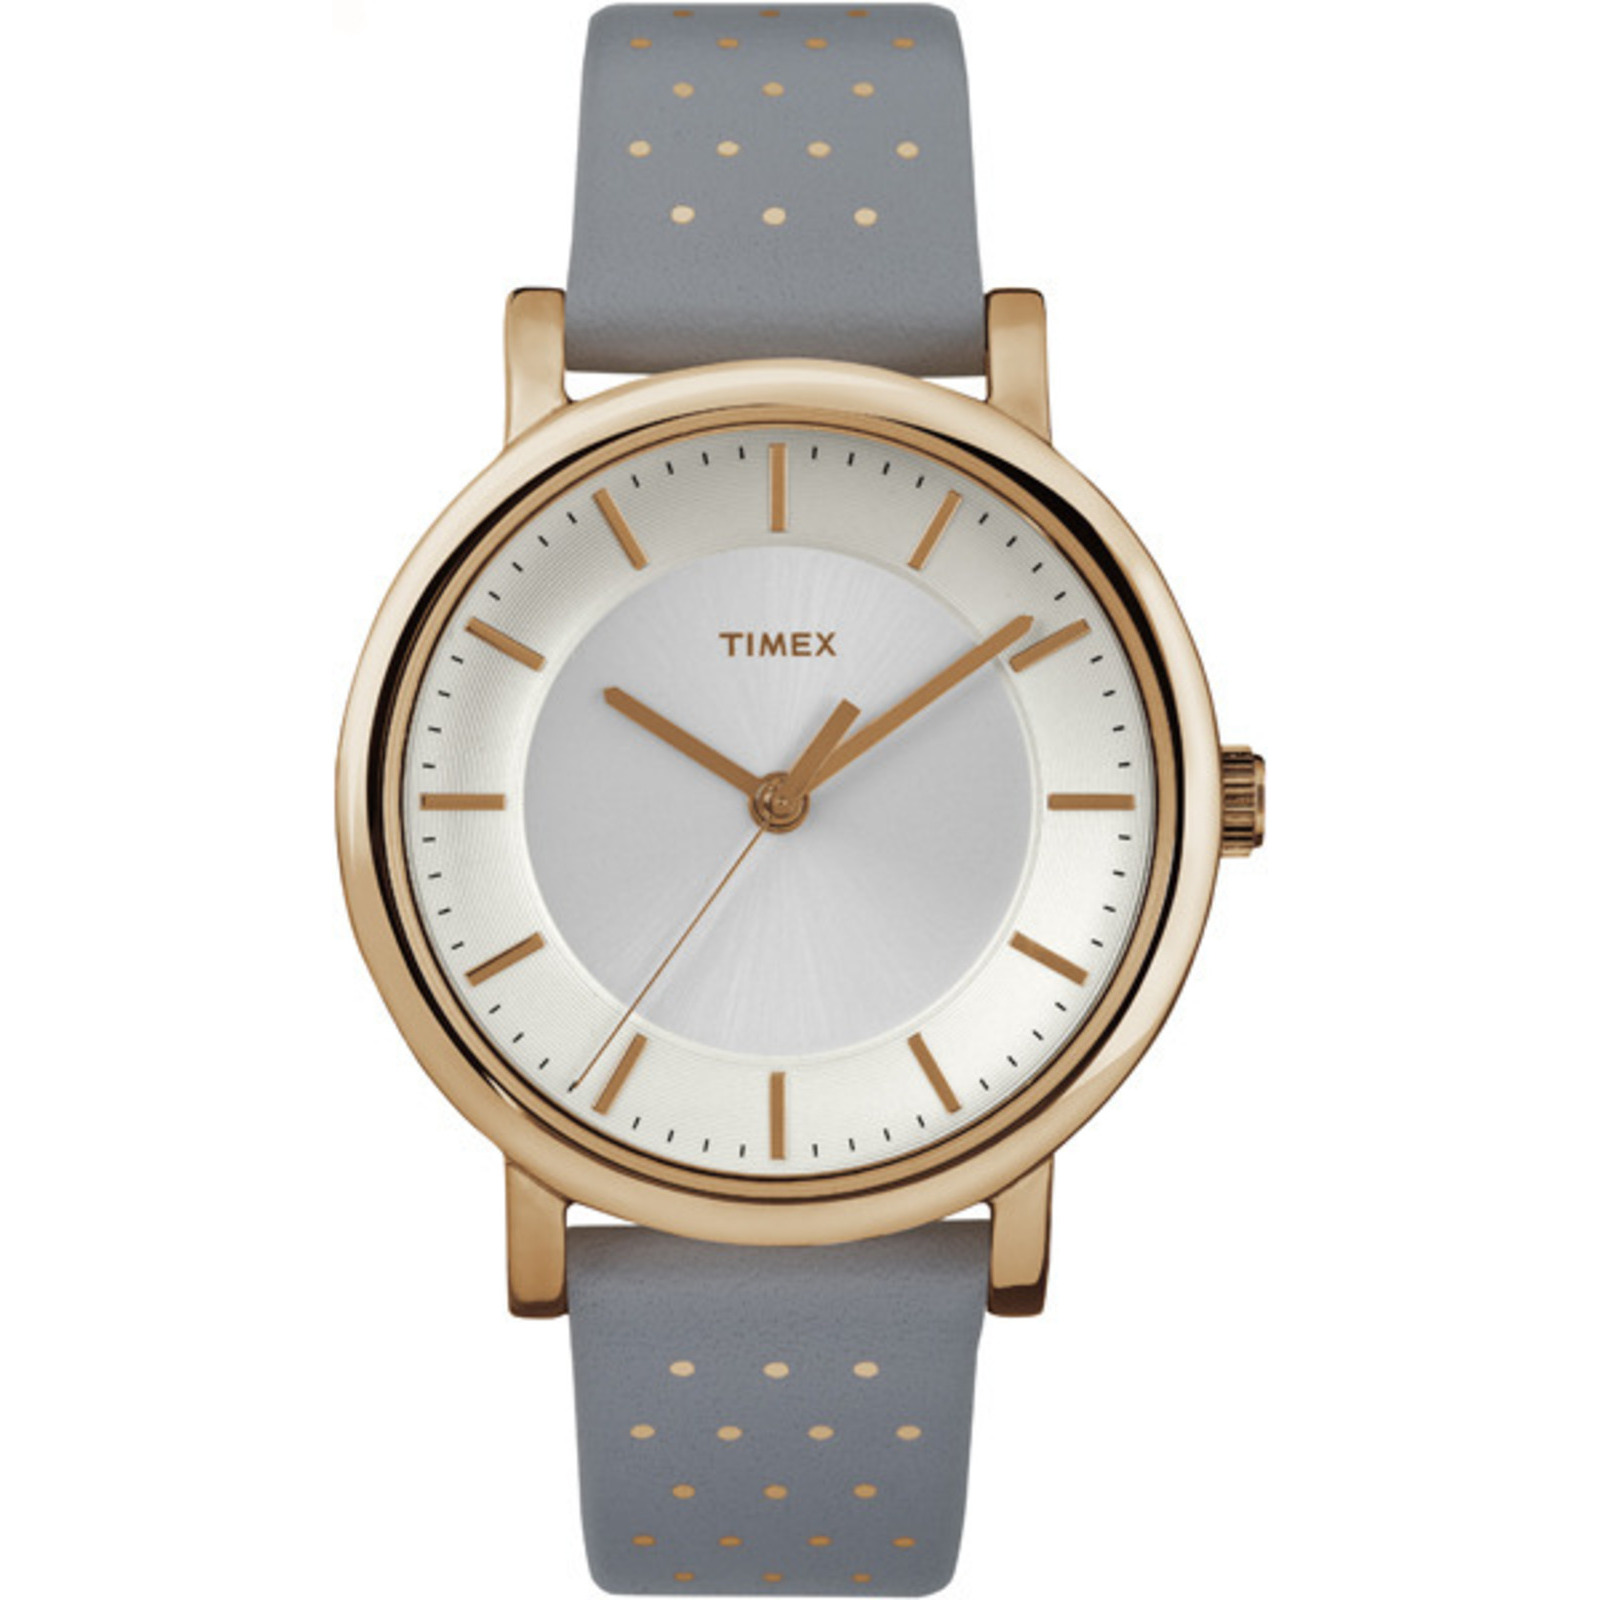 Timex Women's Originals 38mm |Gray| Leather Dress Watch TW2R27400